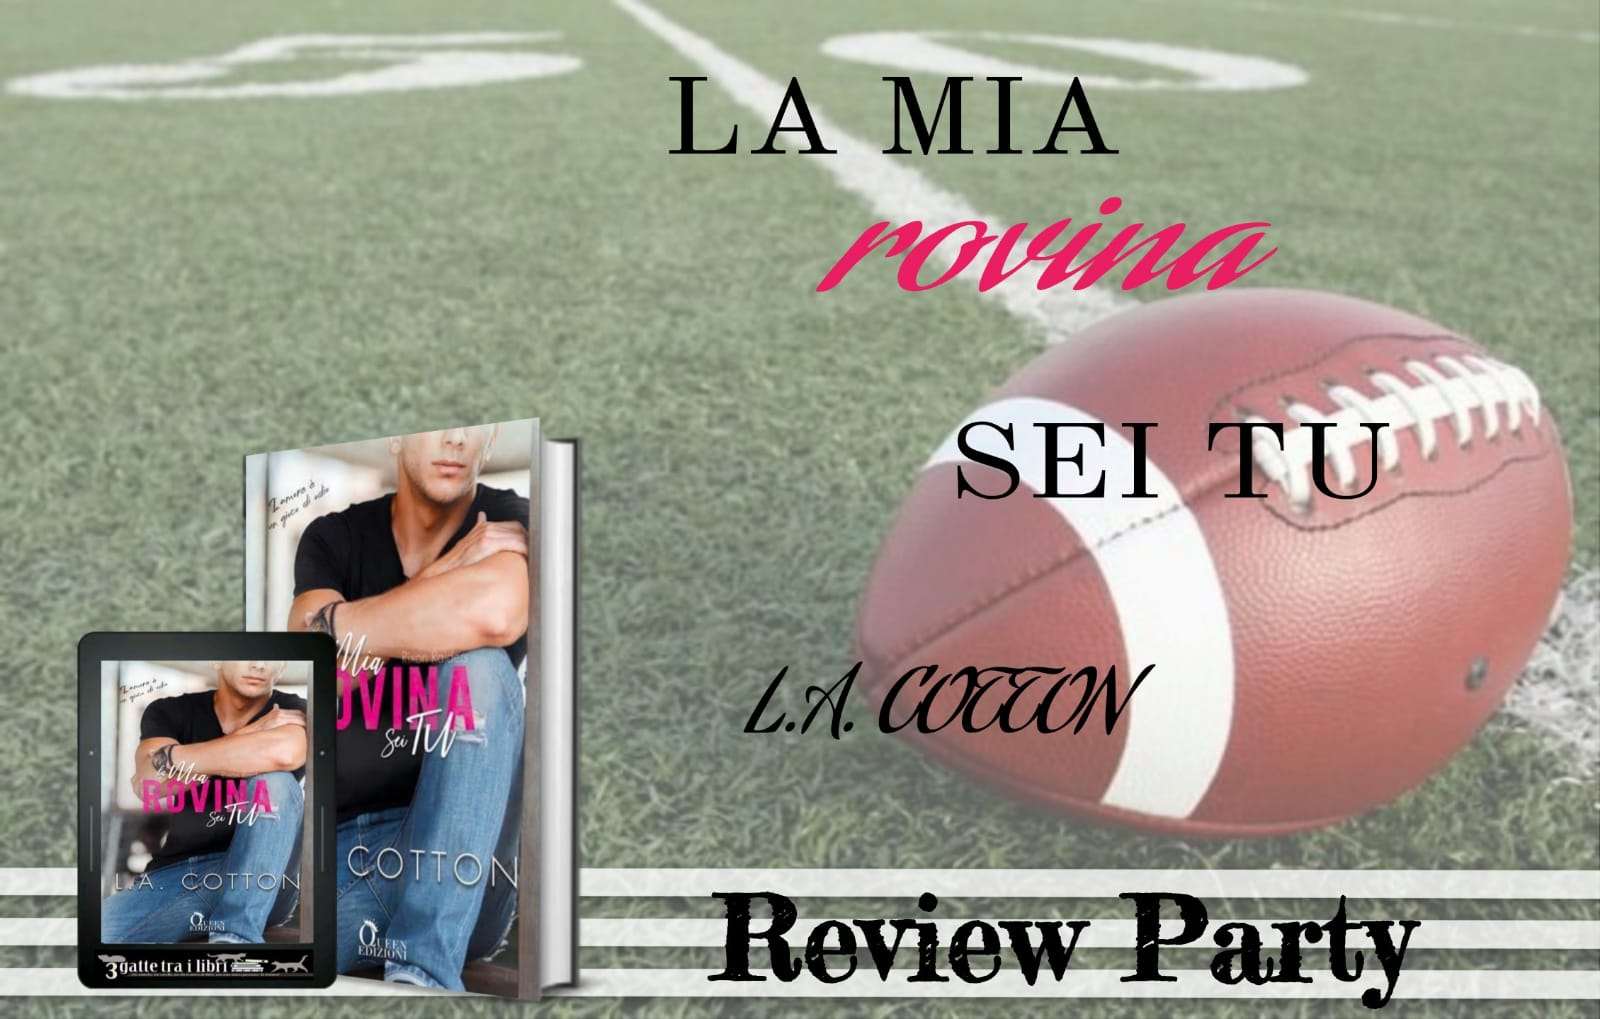 la mia rovina sei tu di l.a. cotton review party cover